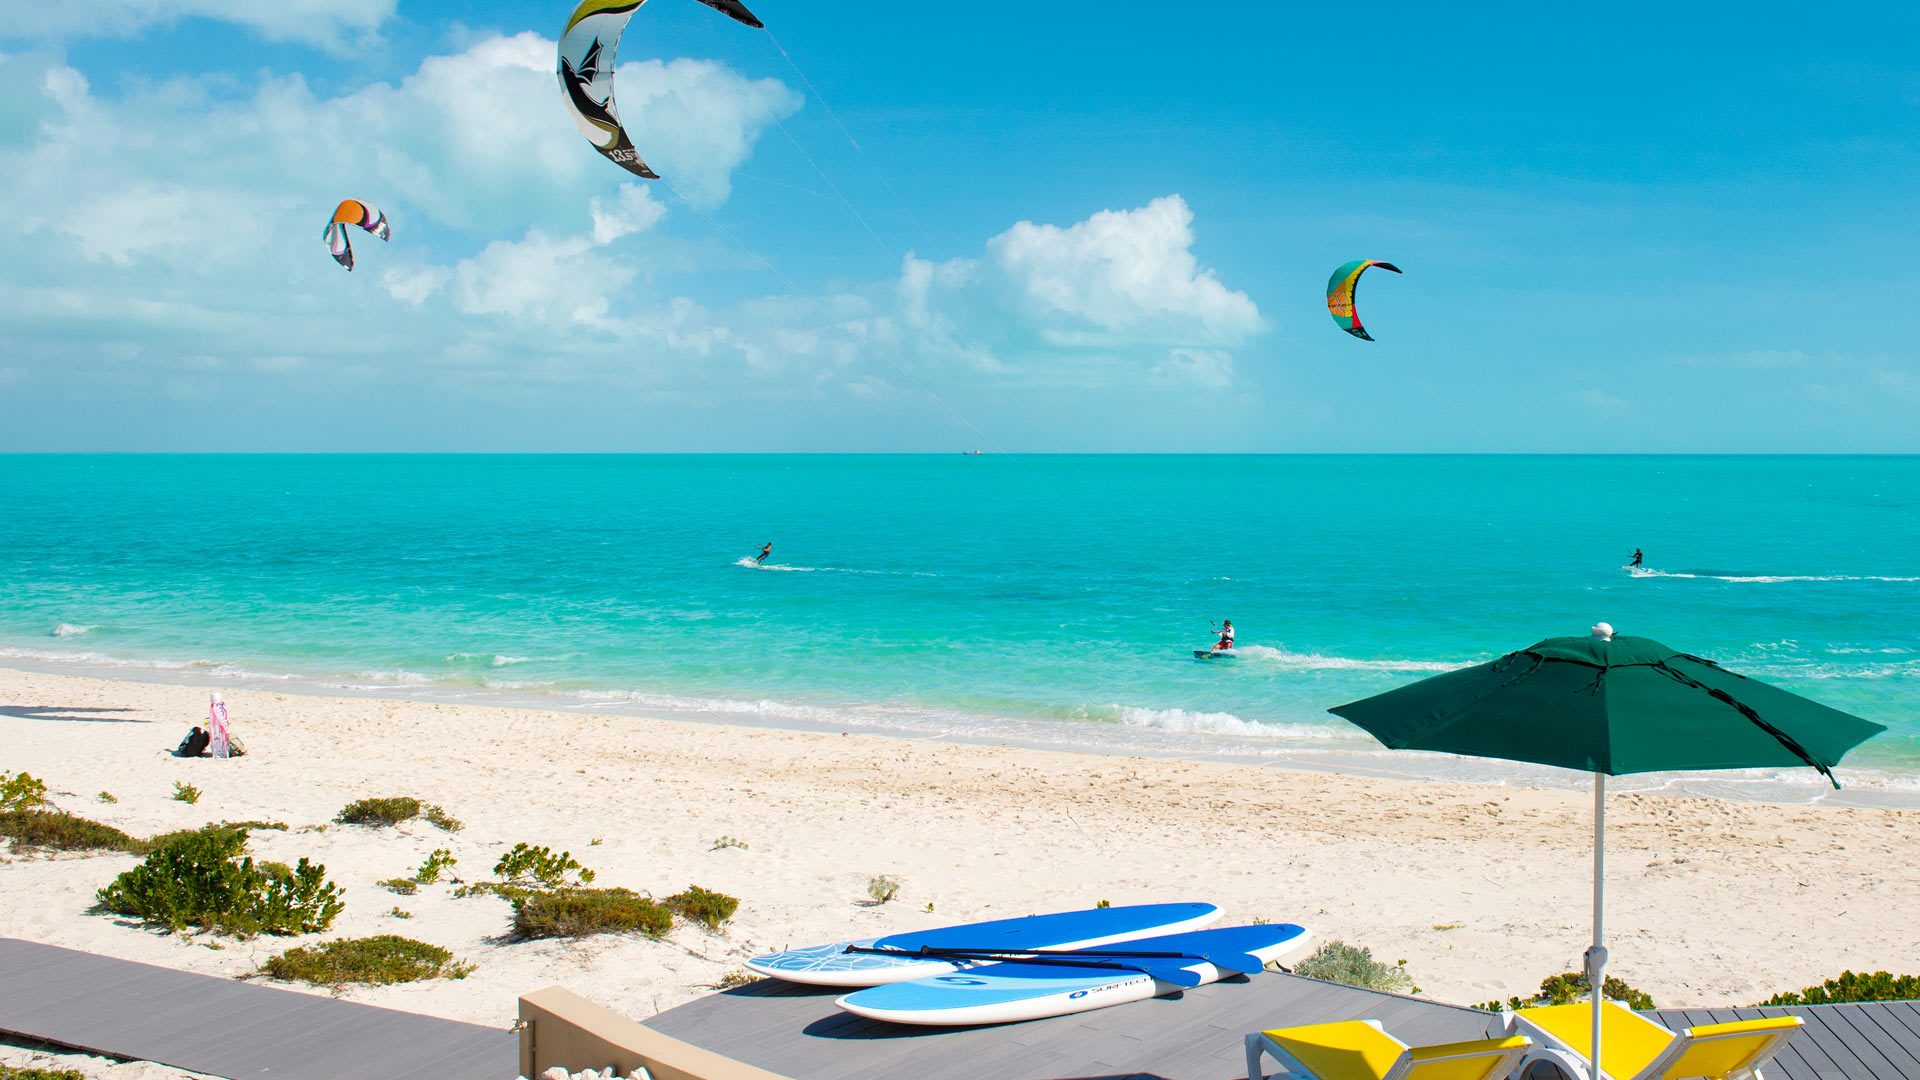 Windhaven Luxury beach villas rental, Long Bay, Turks and Caicos - Enjoy kiteboarding